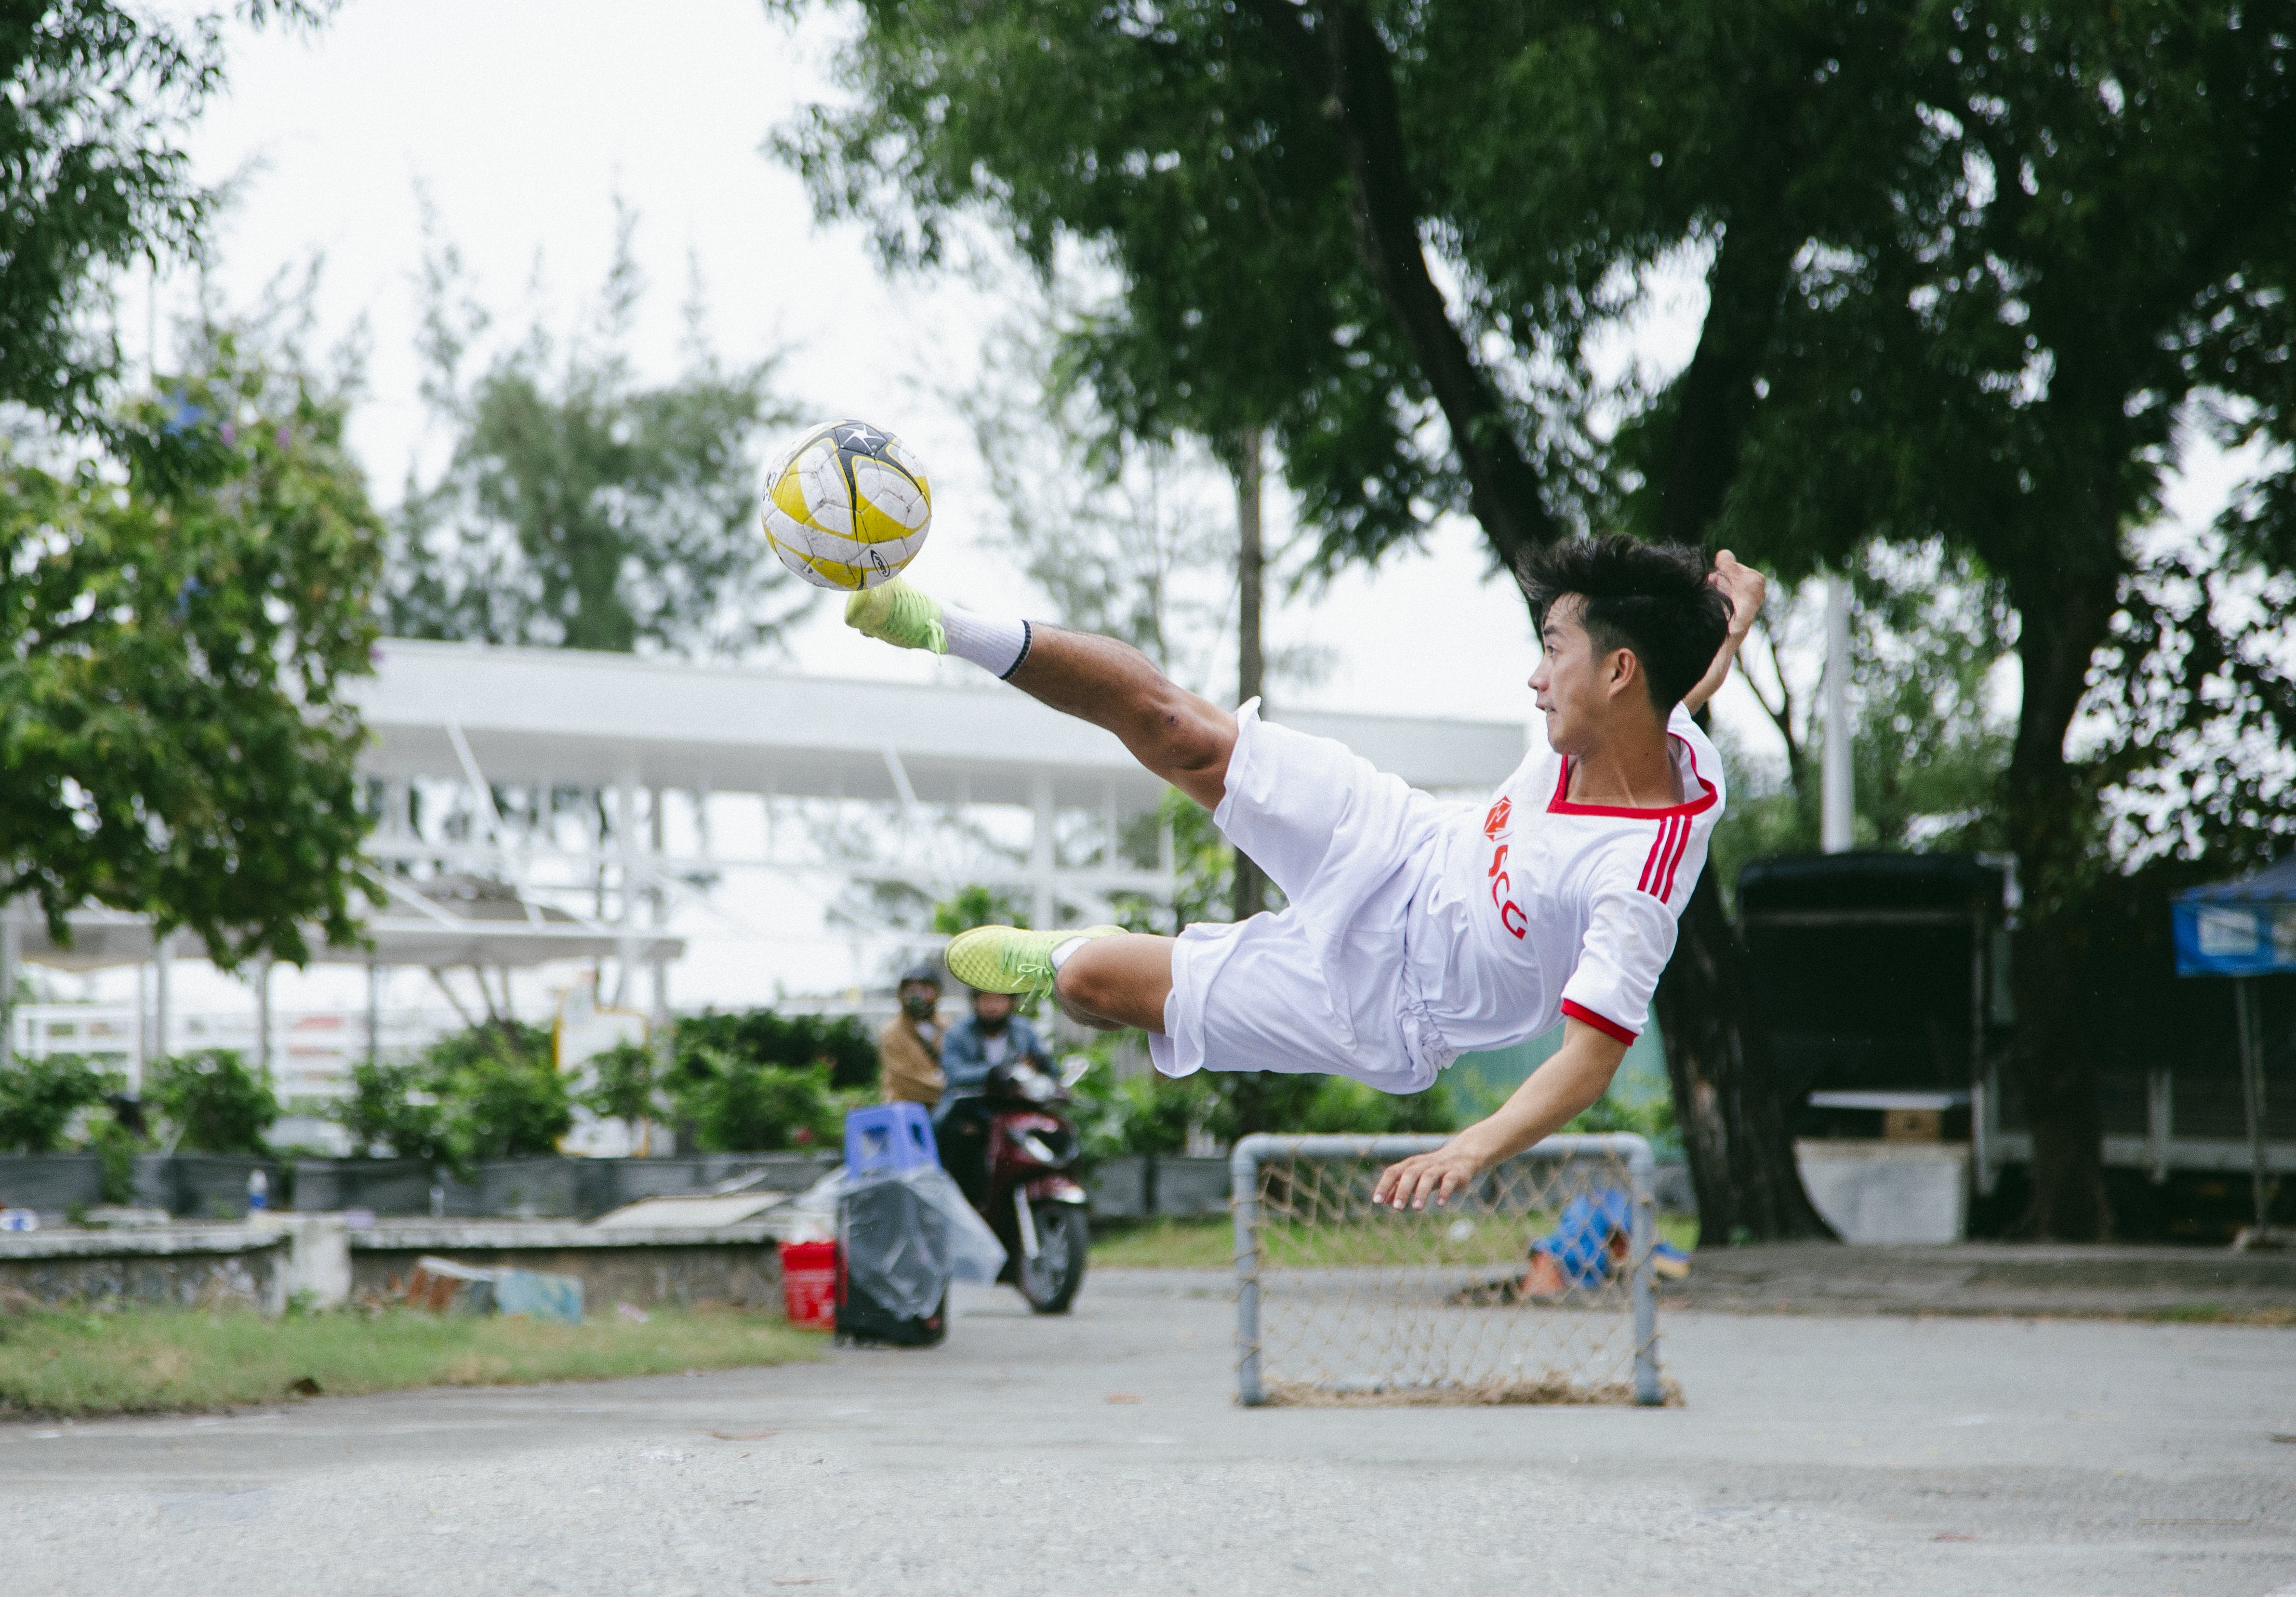 Time Lapse Photography of Soccer Player Jumping Kicking Ball